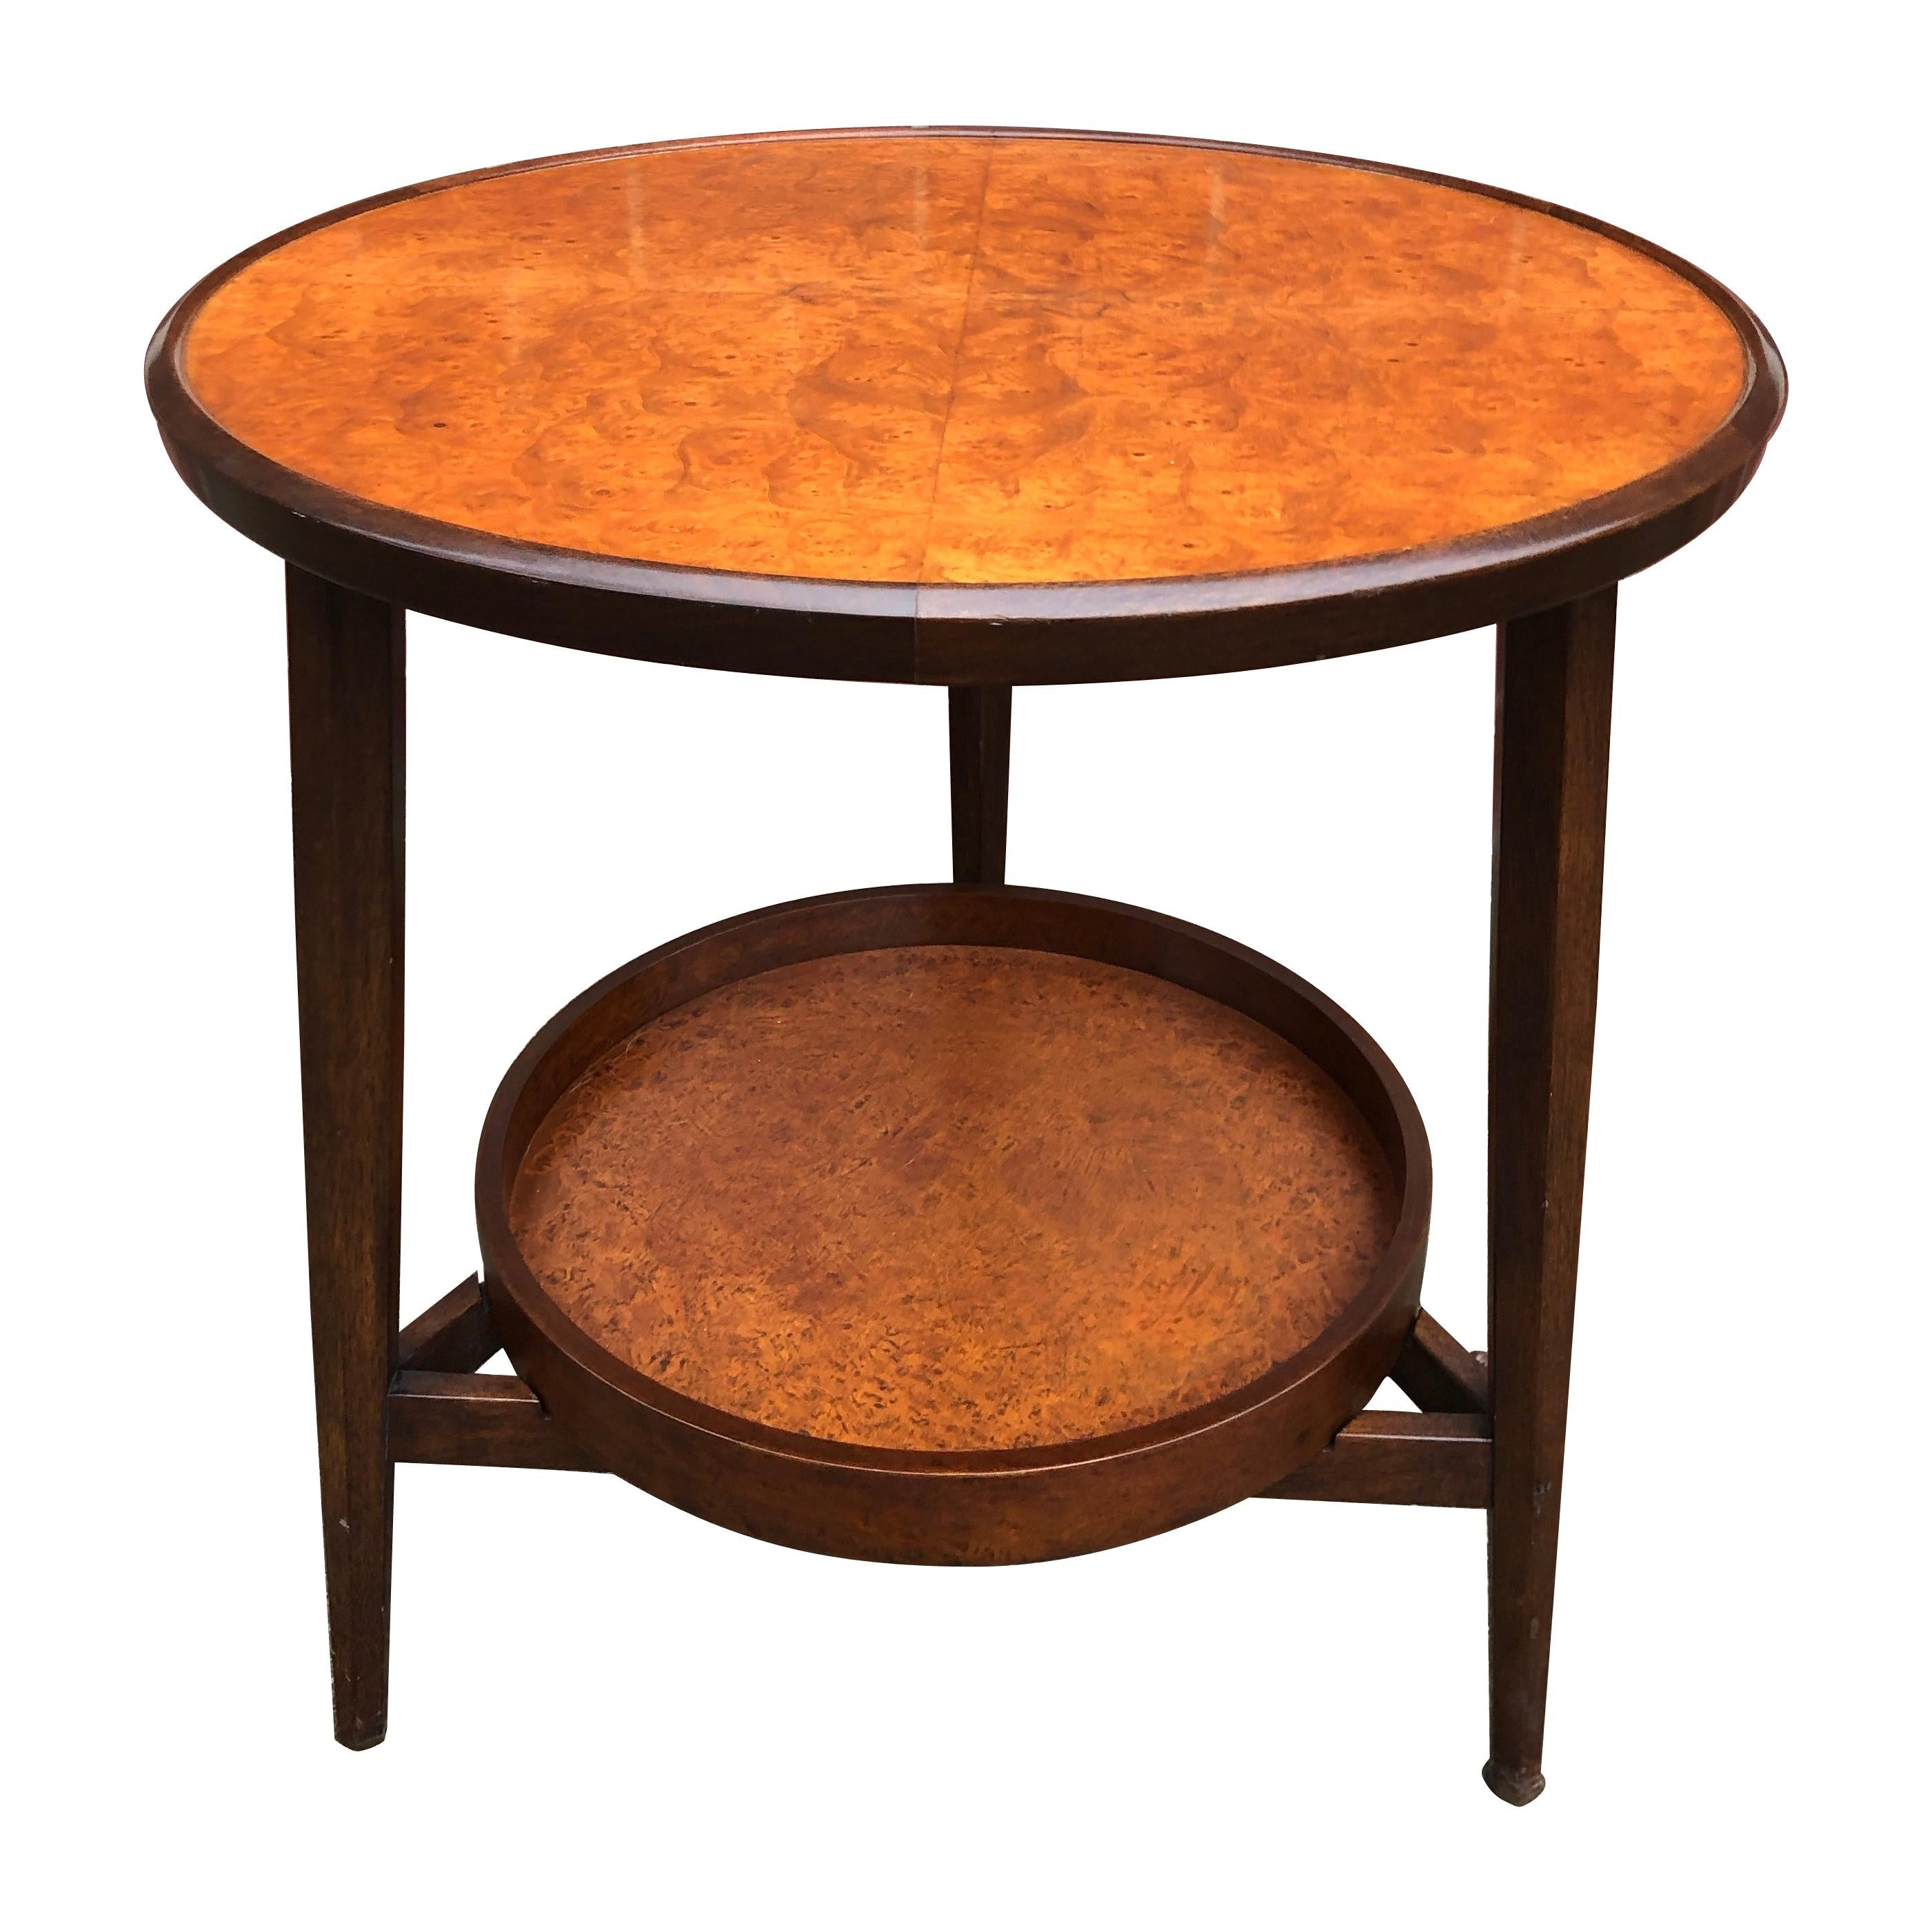 Edward Wormley for Dunbar Occasional Table with Tray